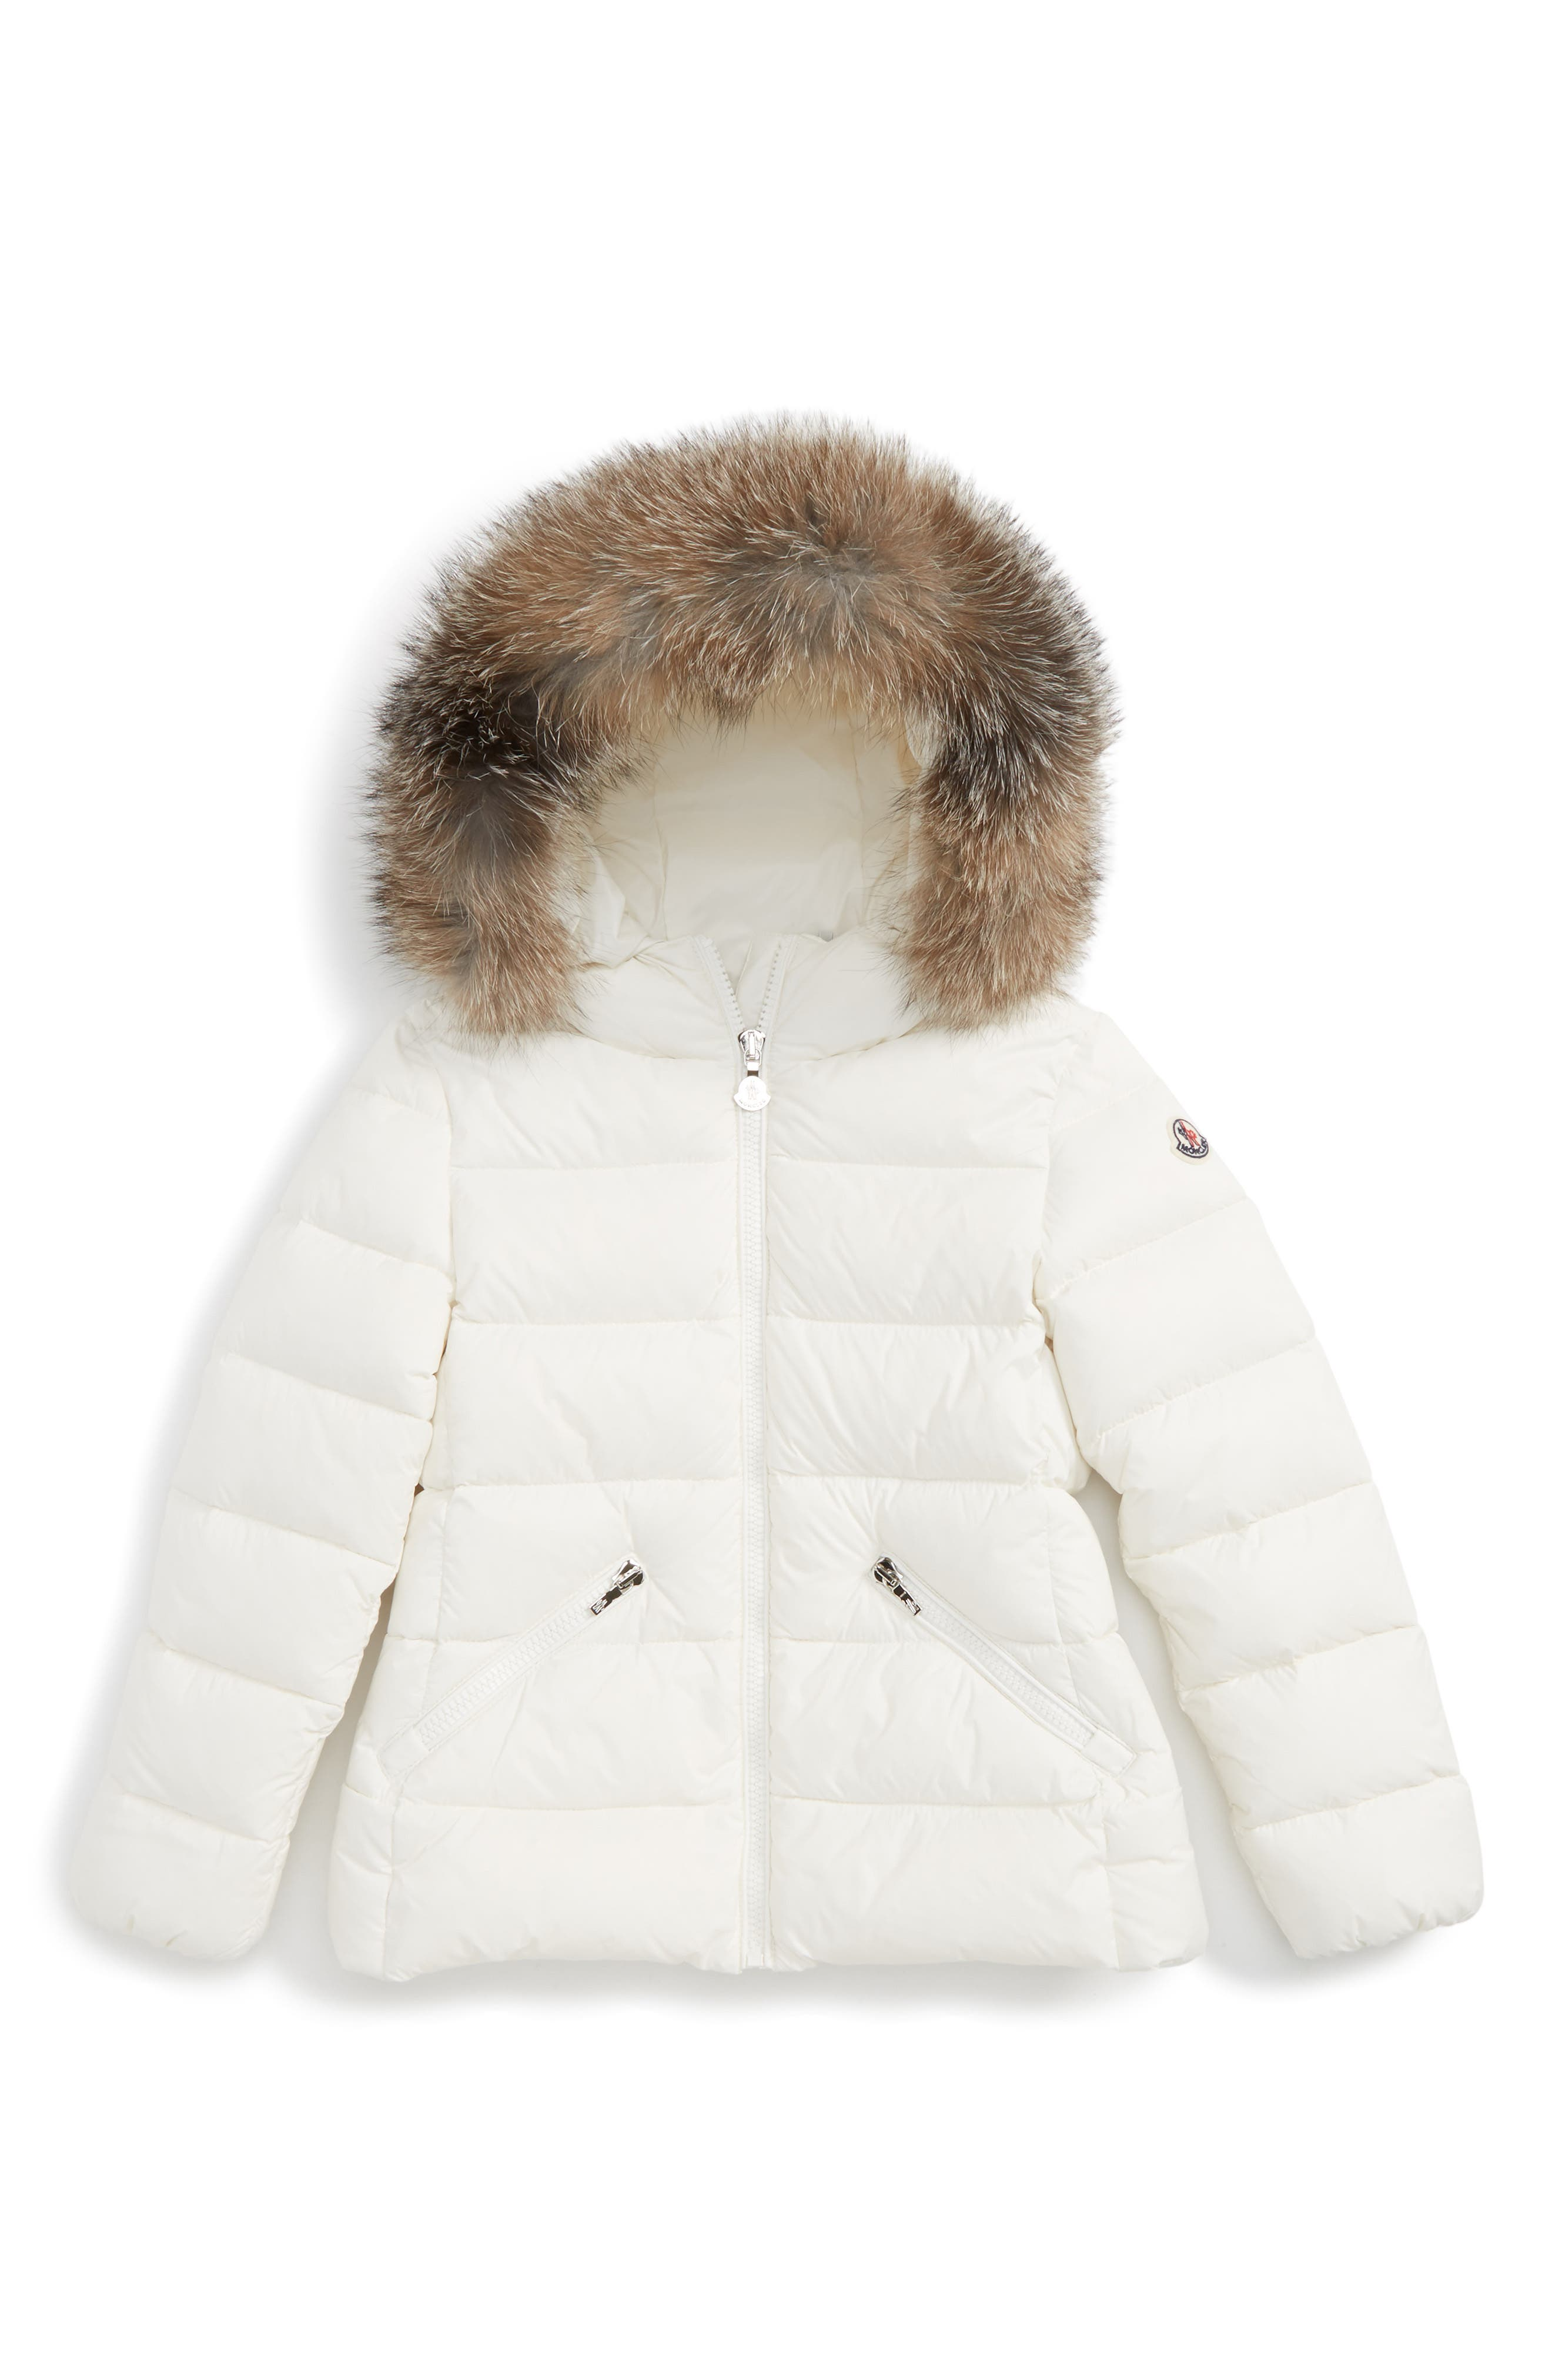 Aimeet Hooded Down Jacket with Genuine Fox Fur,                             Main thumbnail 1, color,                             White